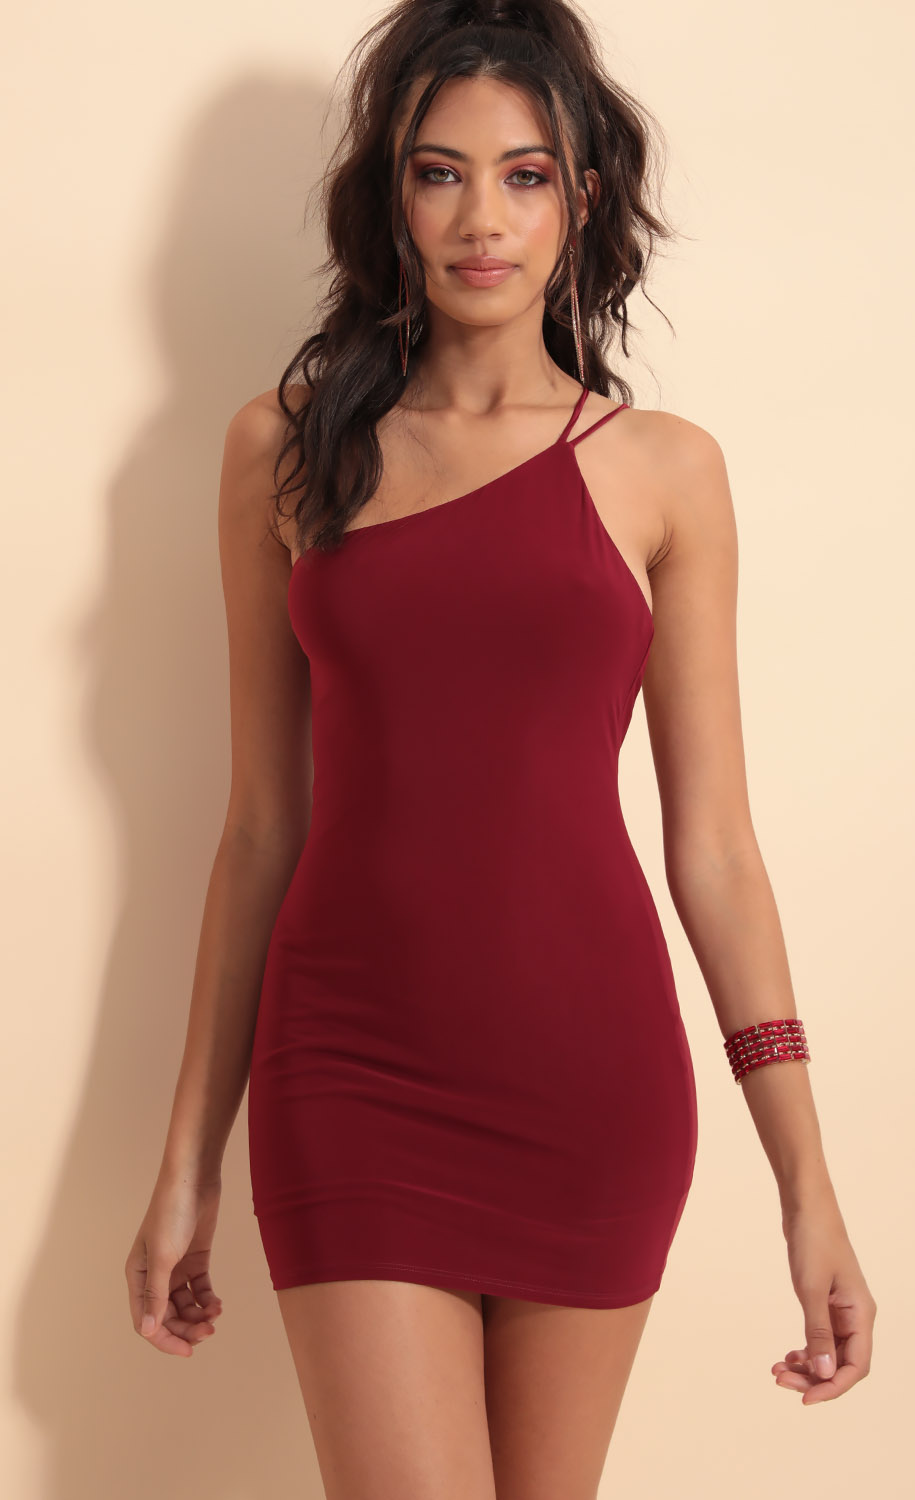 Late Night Venezia Dress in Burgundy